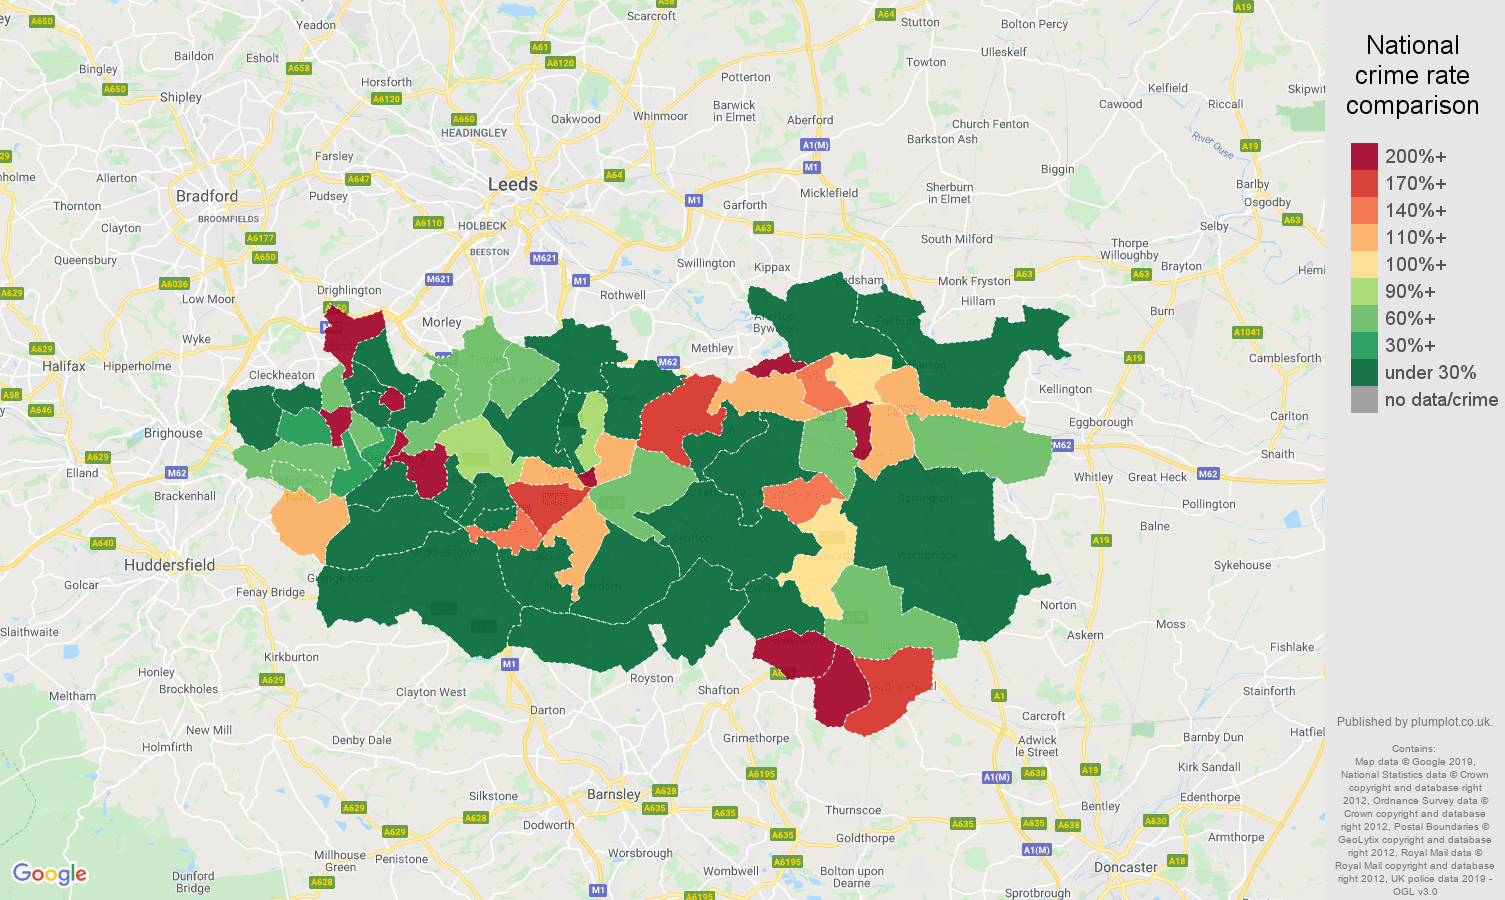 Wakefield shoplifting crime rate comparison map